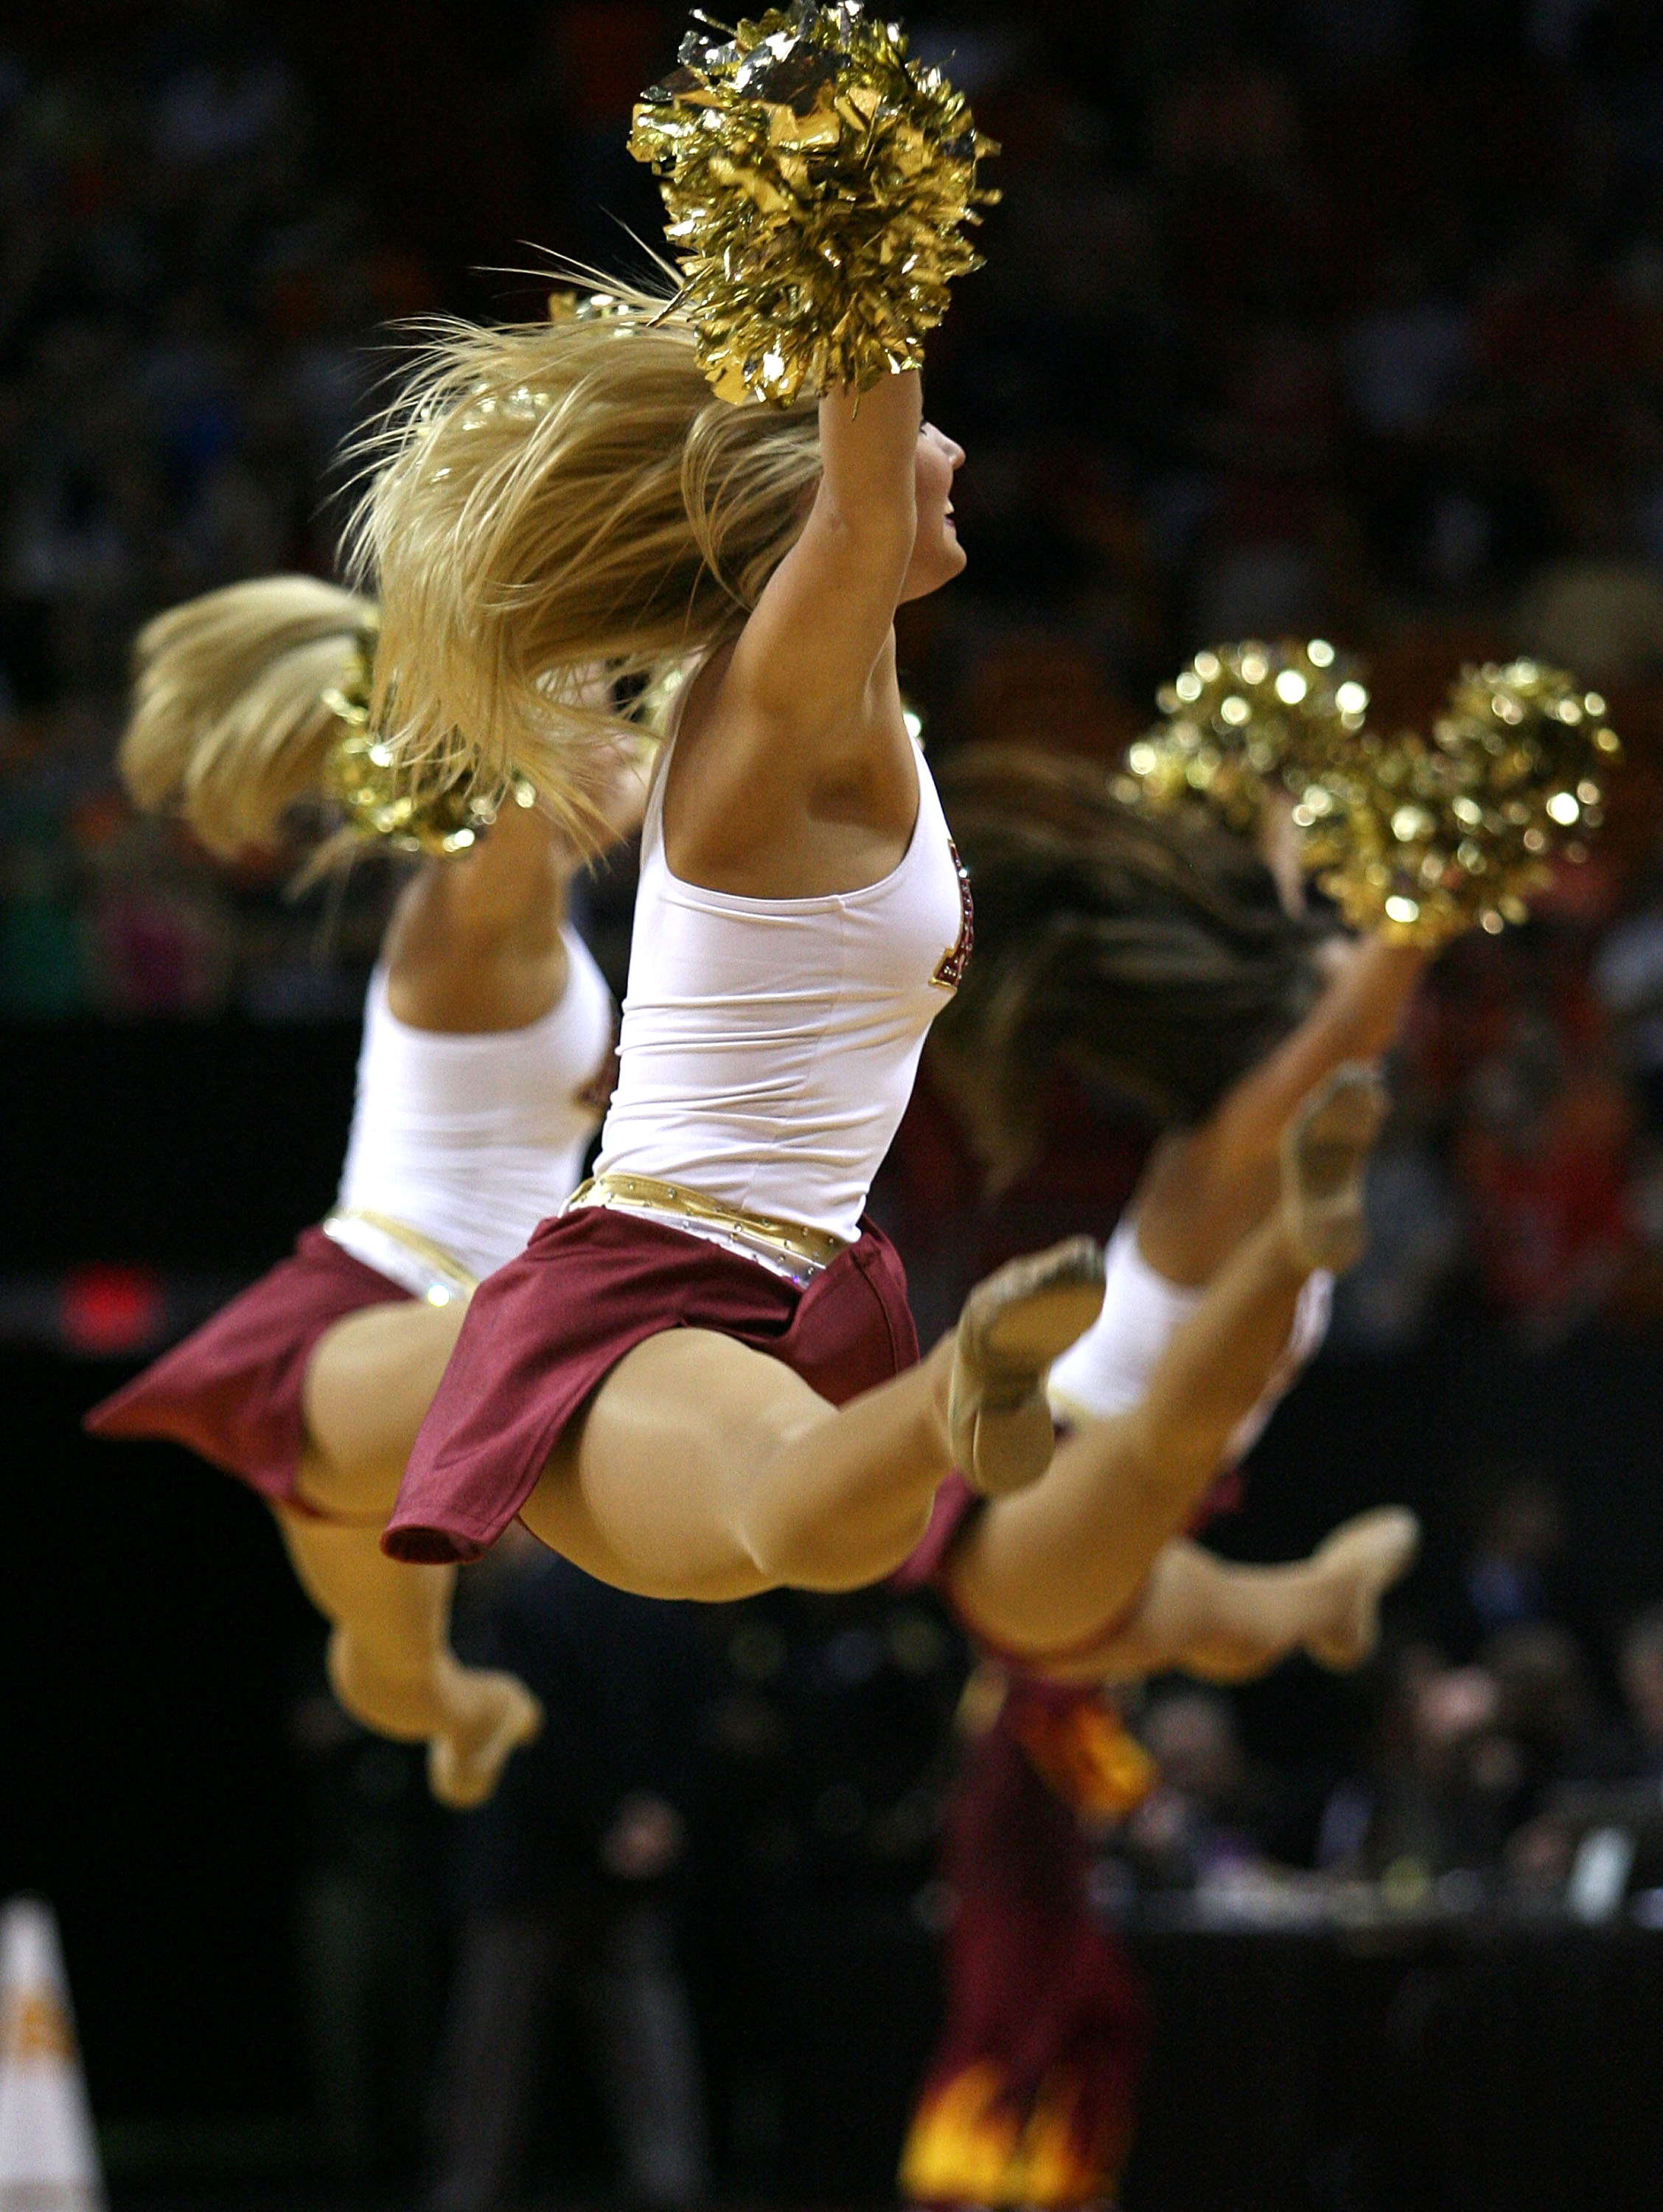 College cheerleaders hot pics, sexy playboy group imgaes